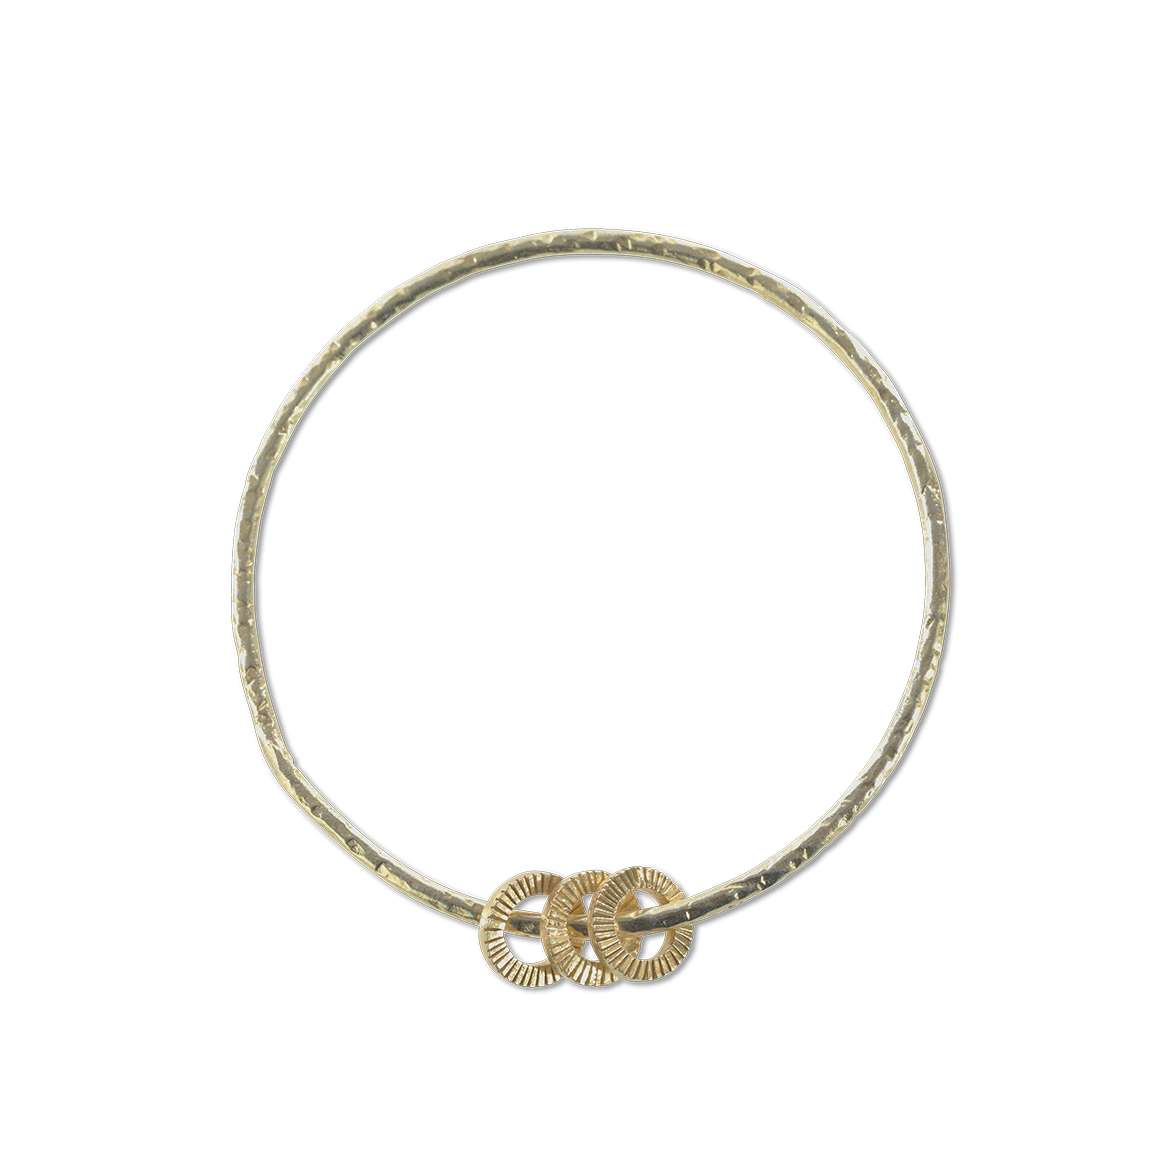 Gold Lalia Bangle With 3 Hoops by Nkuku - A Fly Went By